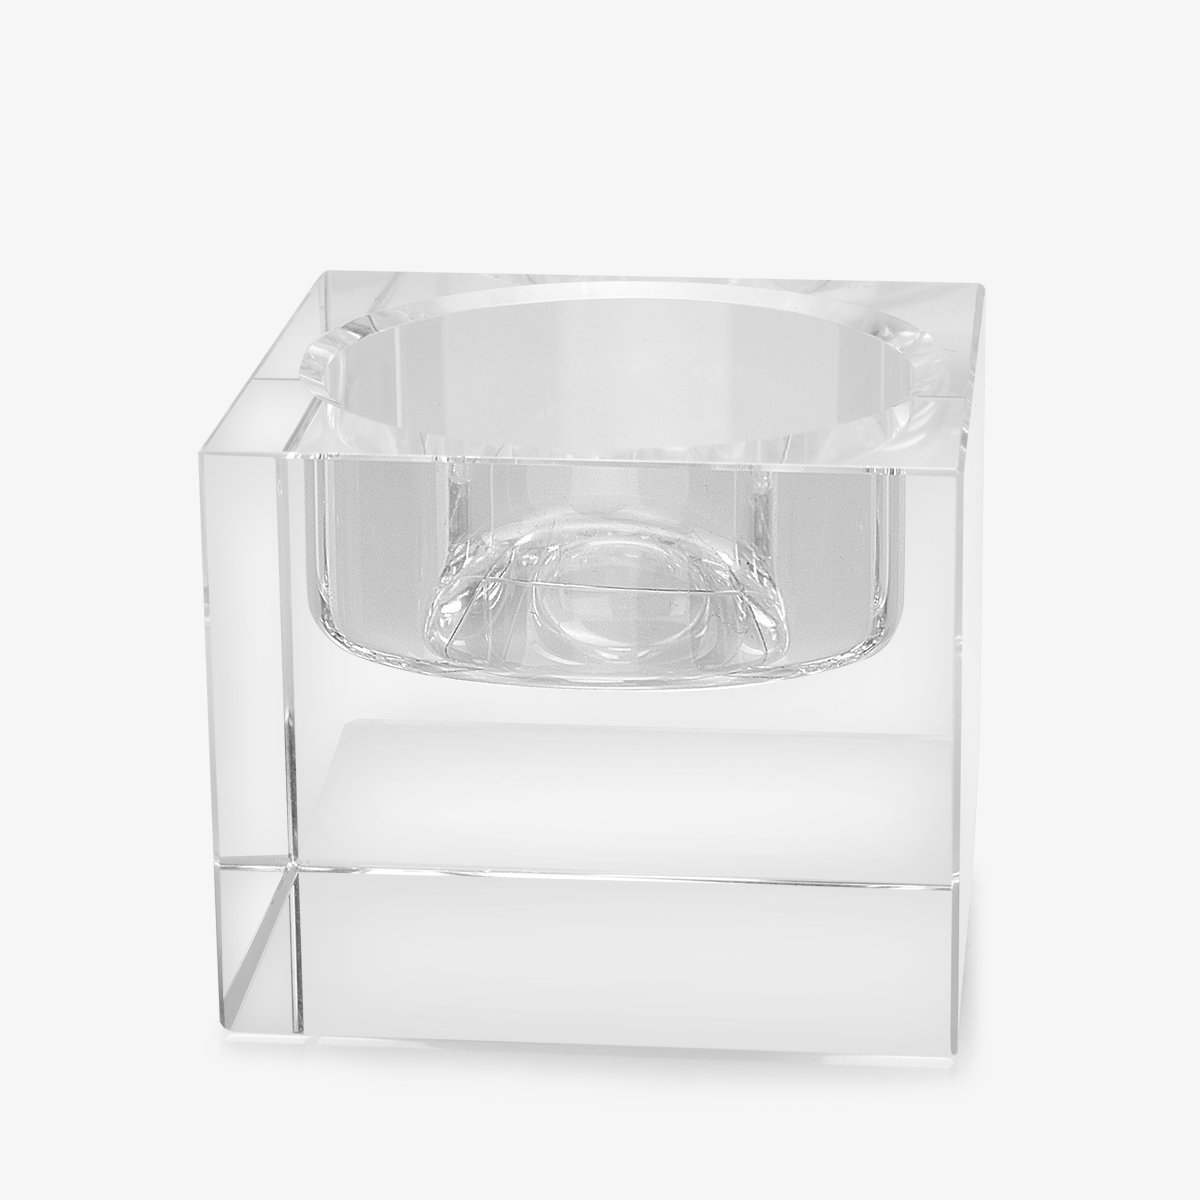 Crystal Candle Holder Modern Clear Square Candlestick for Birthday/ Anniversary Celebration/Wedding Home Decor Candlestick Home Kitchen(1.97/1.97/1.57)